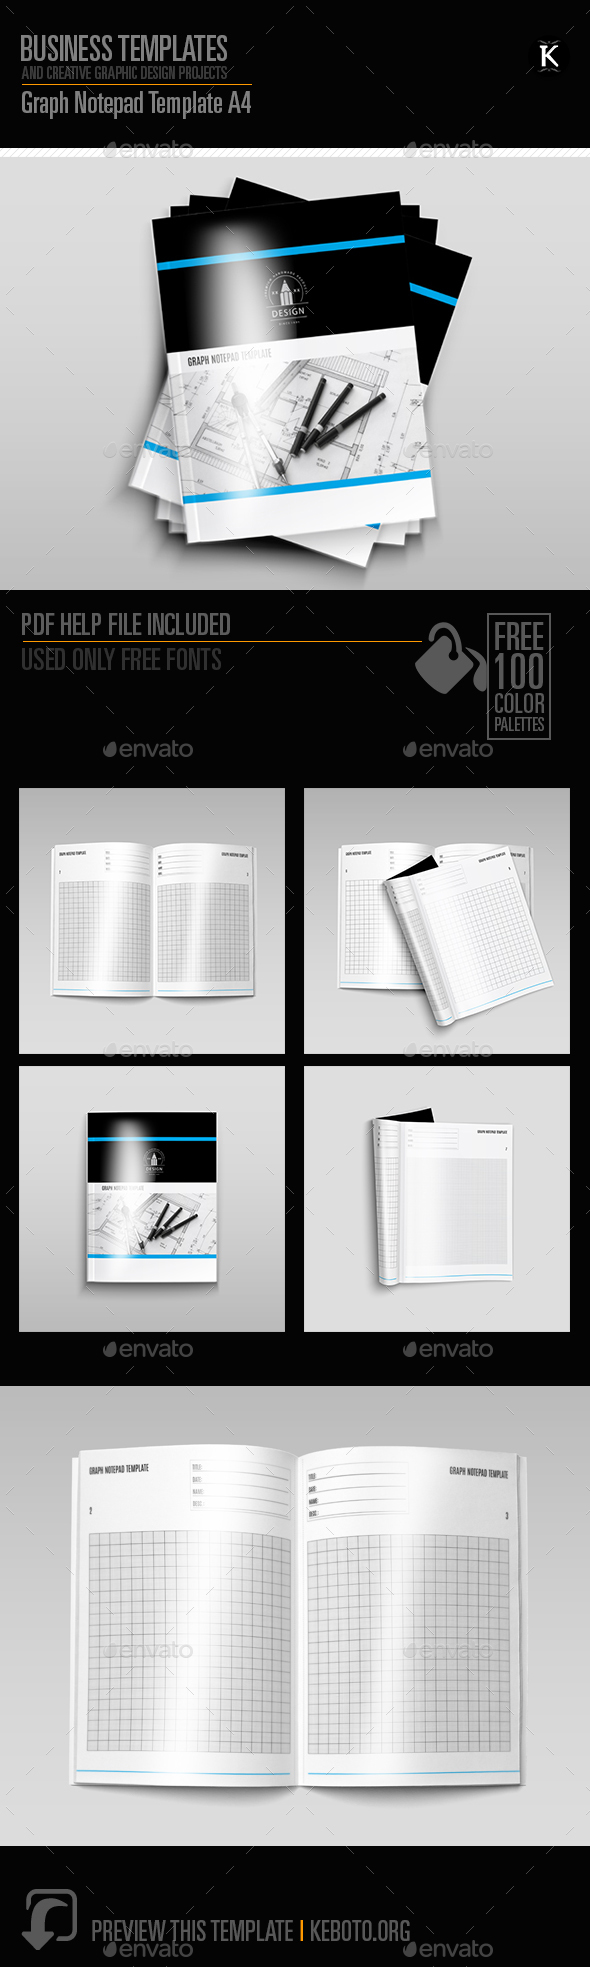 Notepad Stationery And Design Templates From Graphicriver